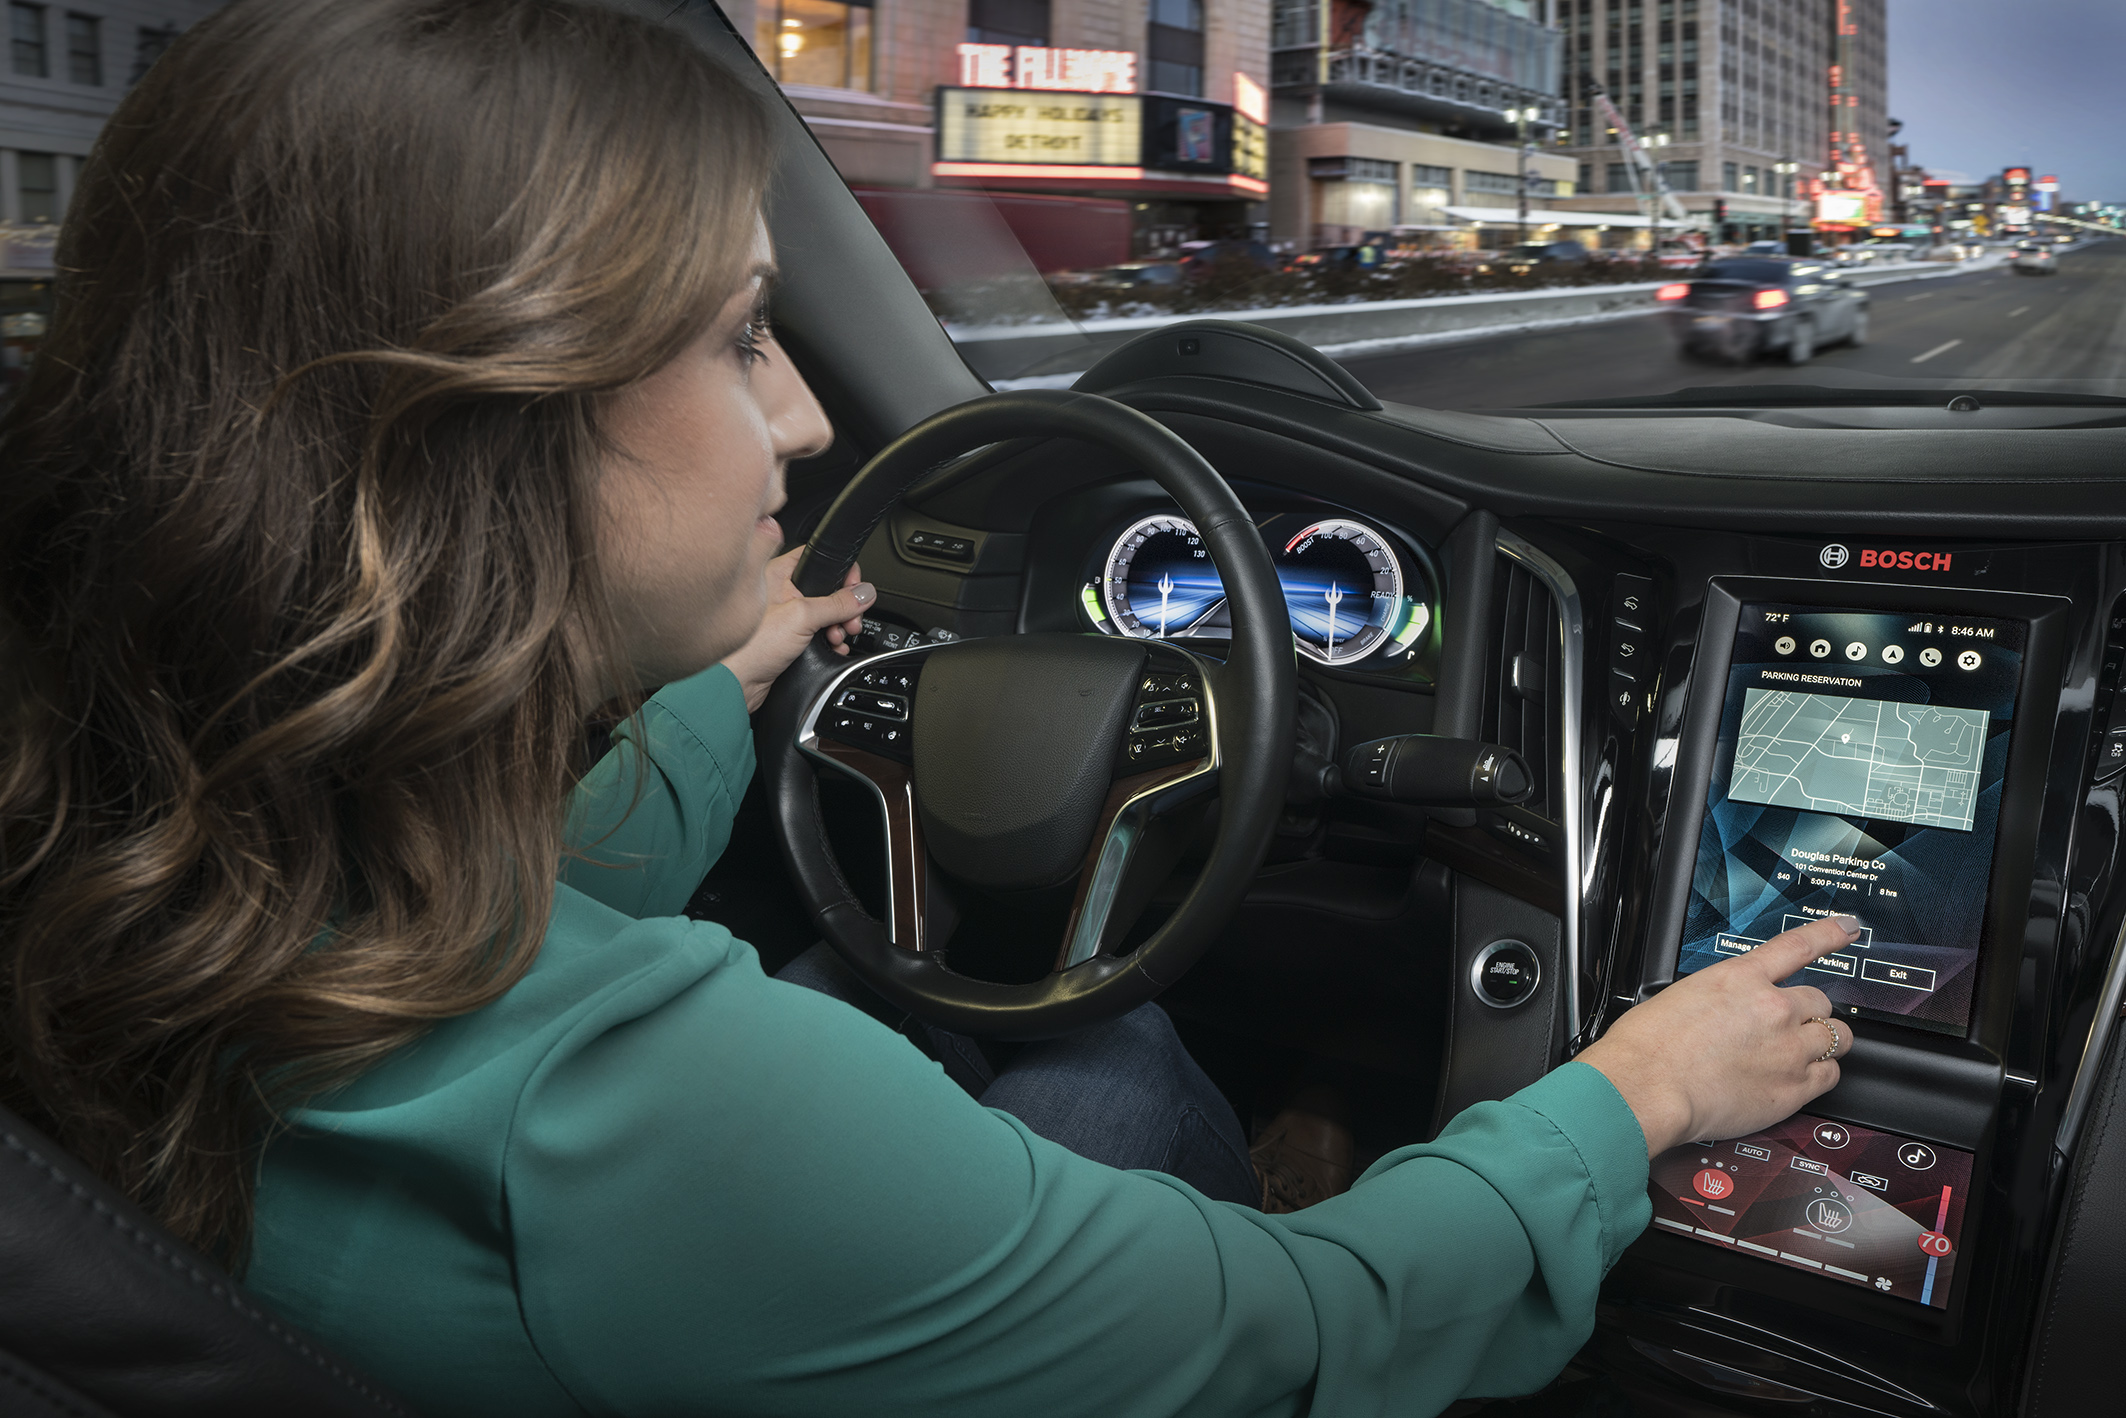 Digital displays and voice-controlled assistants are revolutionizing driving